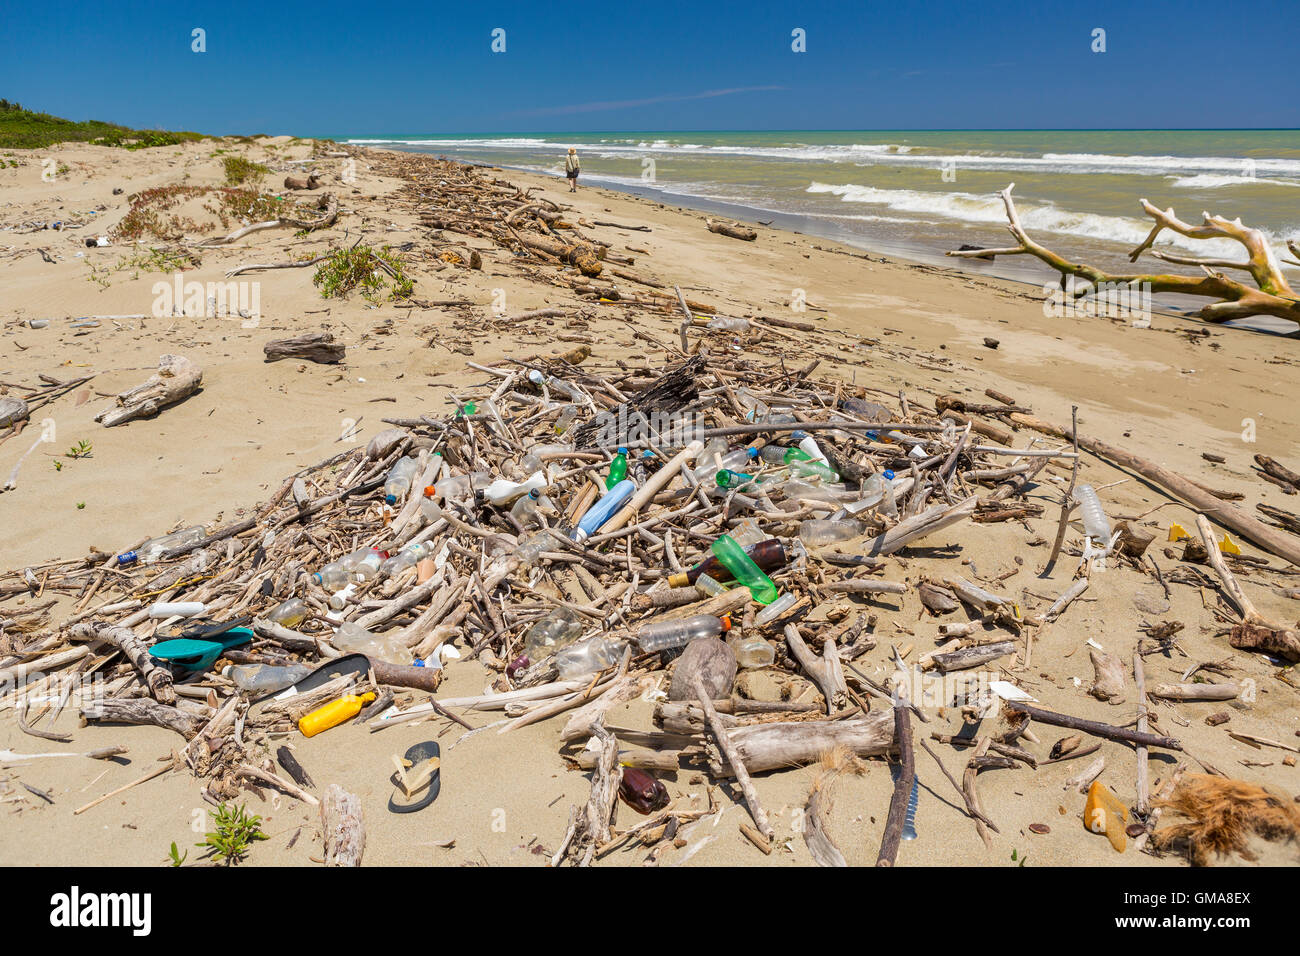 DOMINICAN REPUBLIC - Garbage on beach, plastic bottles and trash, near mouth of Yasica RIver. - Stock Image